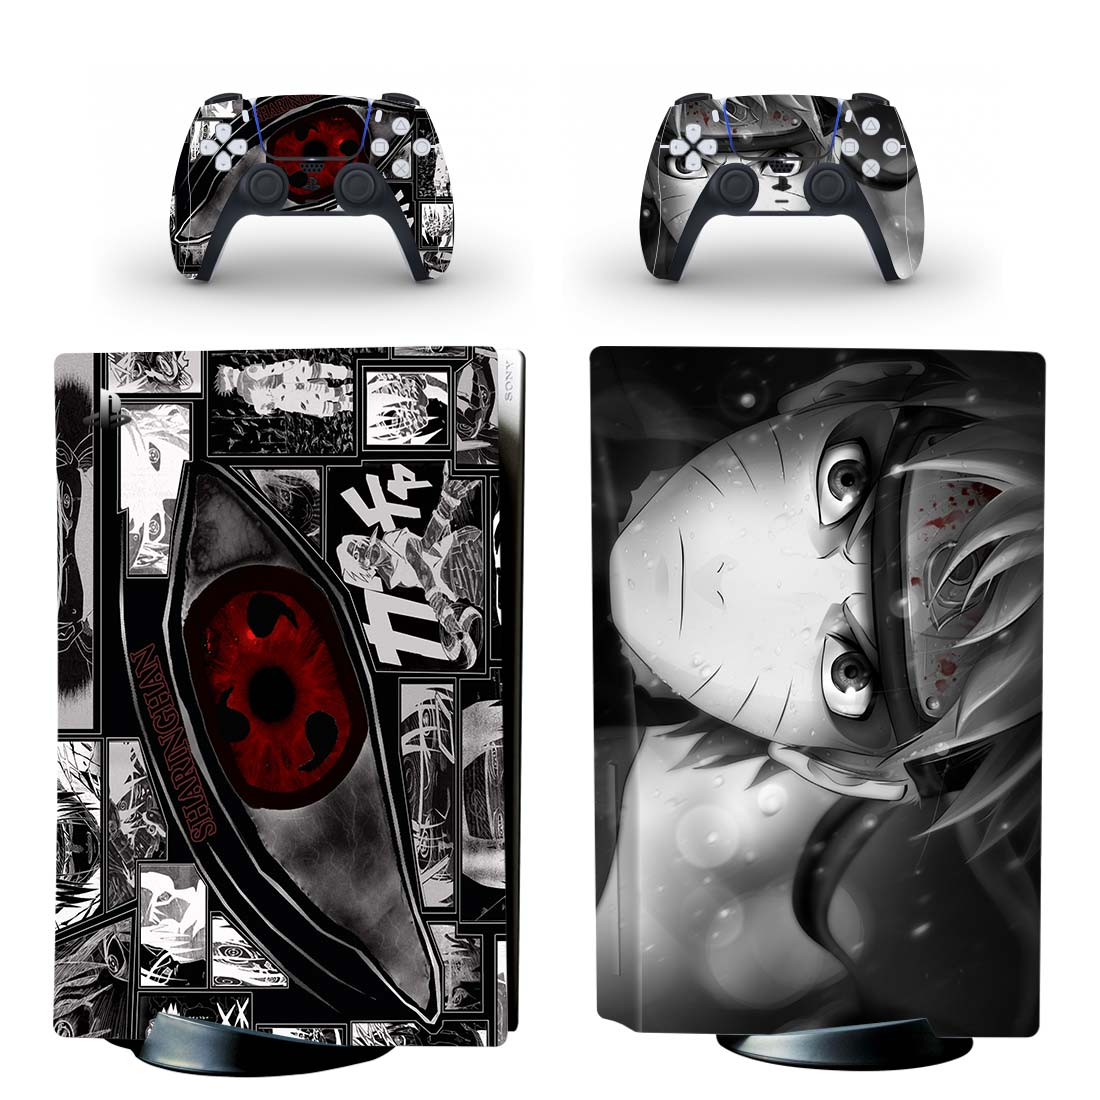 Naruto Skin Sticker Decal For PlayStation 5 Design 16